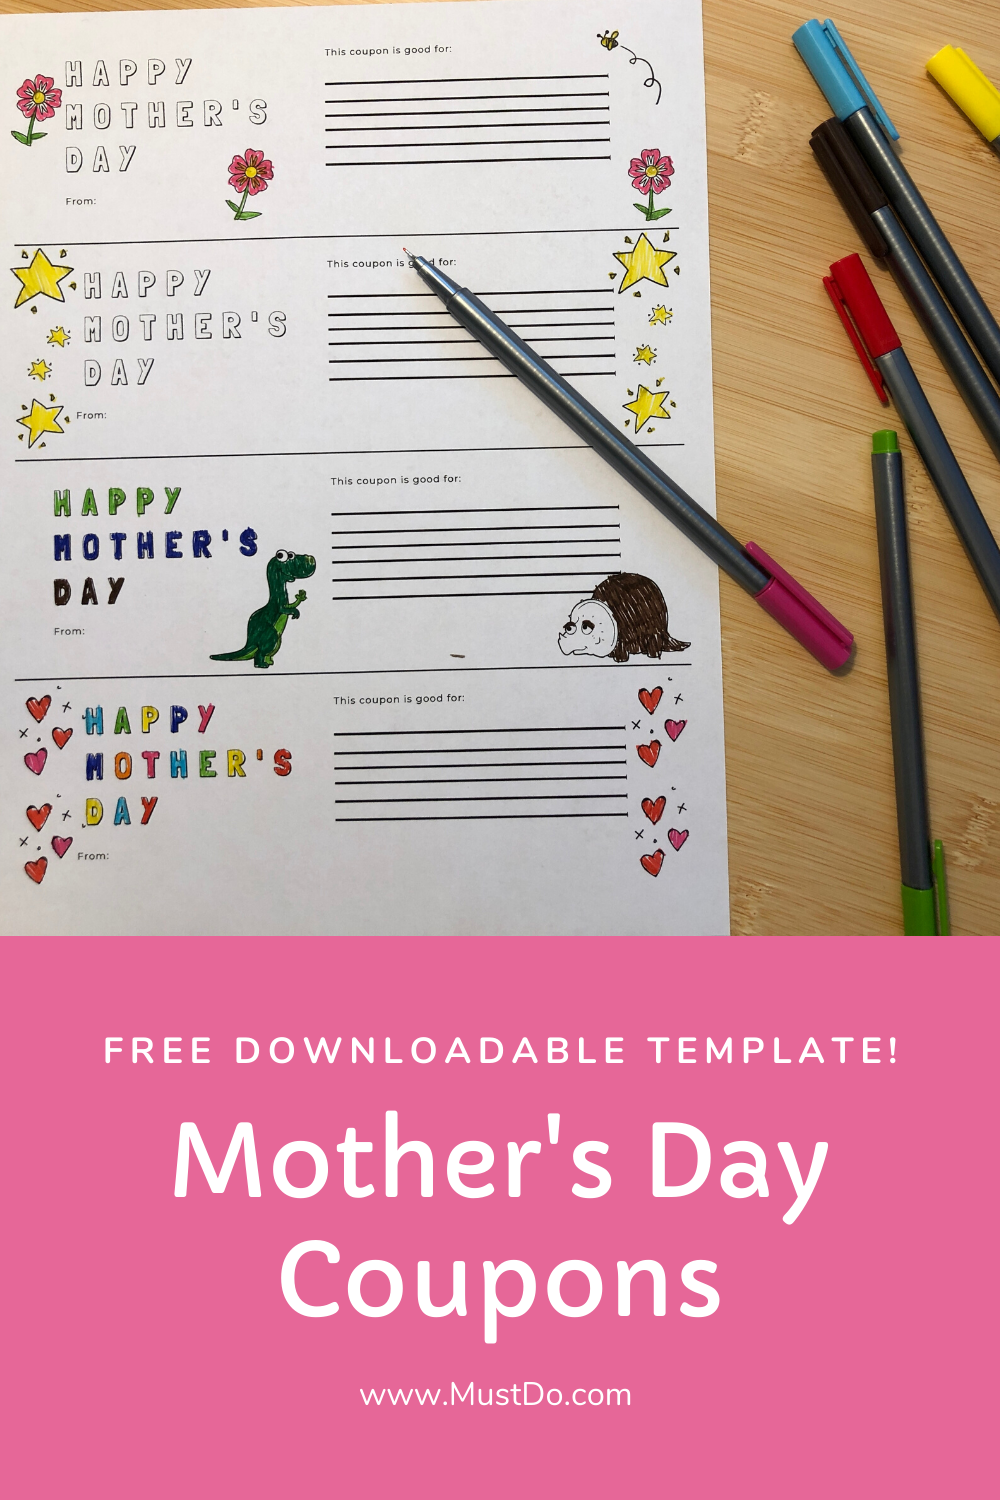 Free Downloadable Template! Mother's Day Coupons | www.MustDo.com